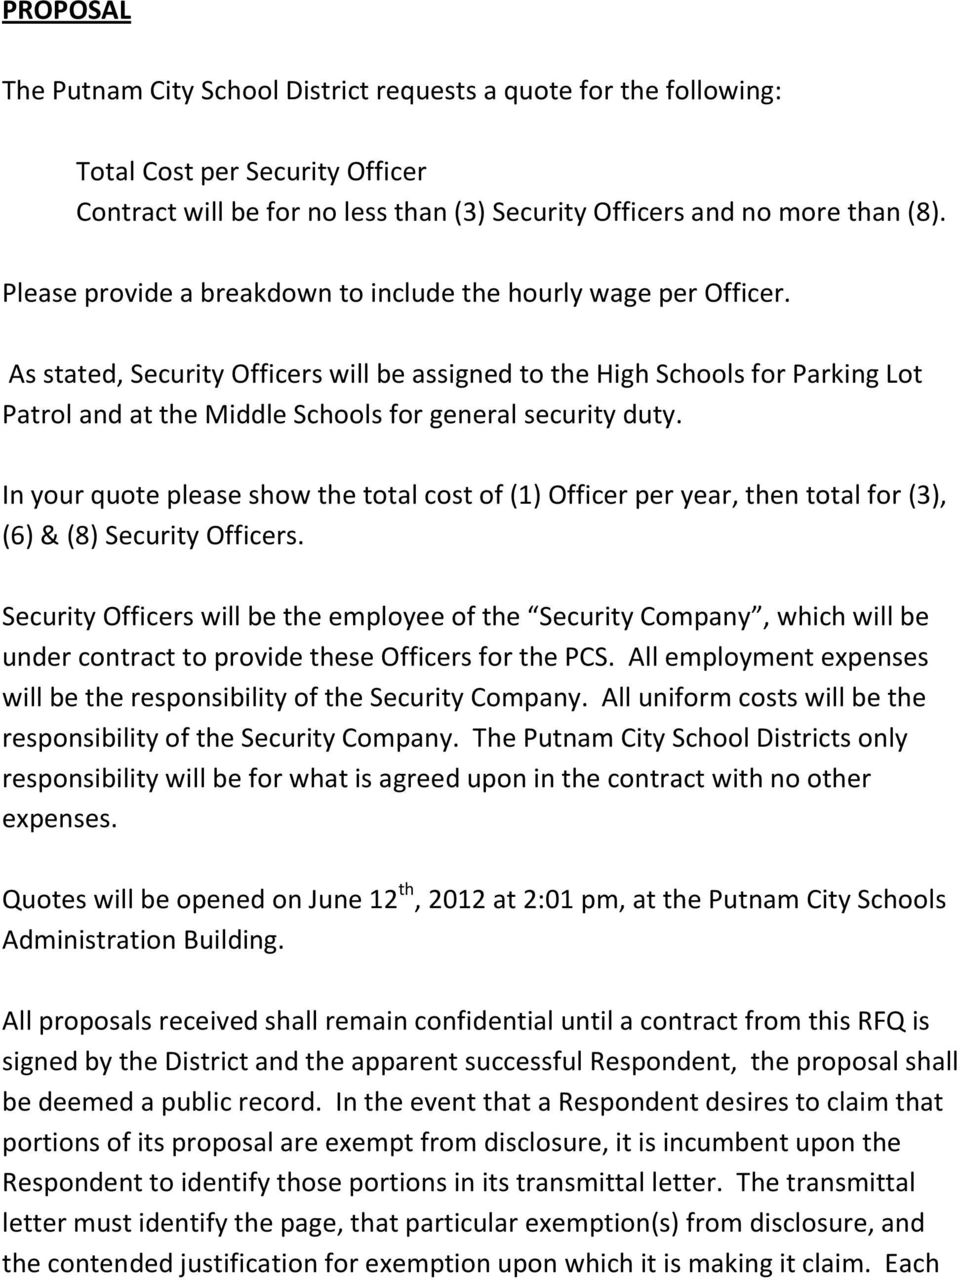 As stated, Security Officers will be assigned to the High Schools for Parking Lot Patrol and at the Middle Schools for general security duty.